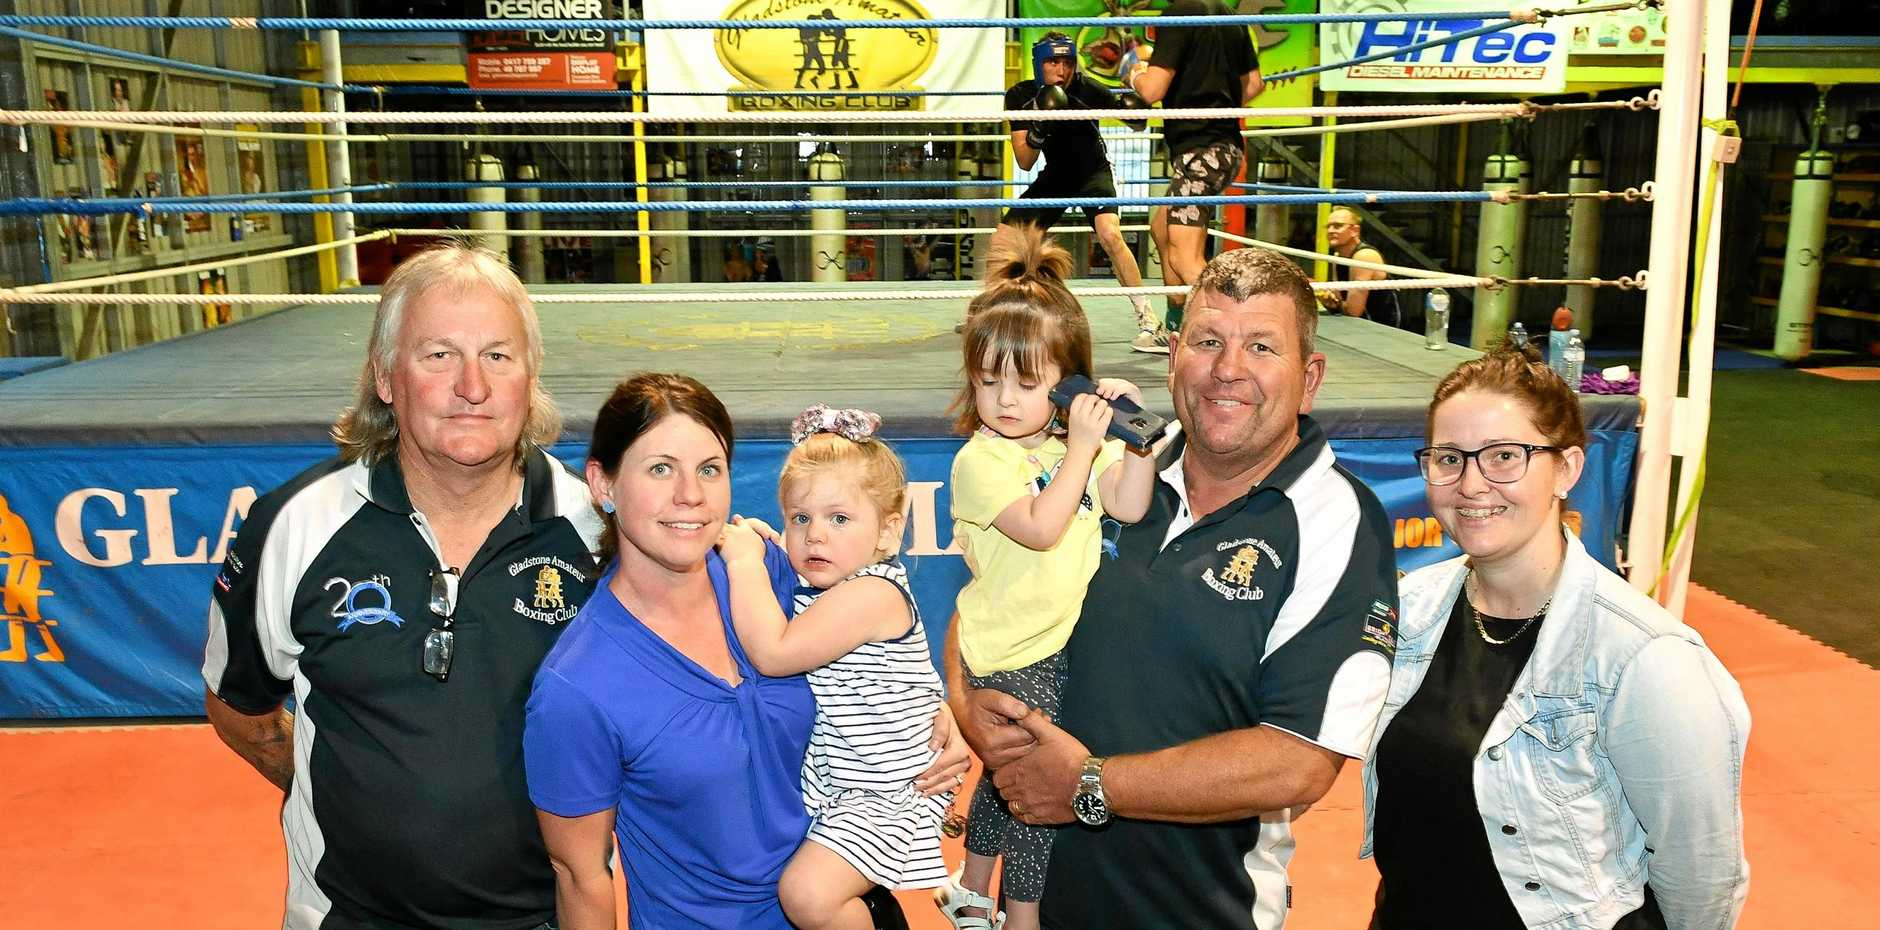 CHARITY SUPPORT: Bike ride organiser Gary Anderson, Robin Berthelsen and Bella Bates with Olivia Hancock nursed by Mick Daly and mum Megan Bale were given the money donation from the charity events.